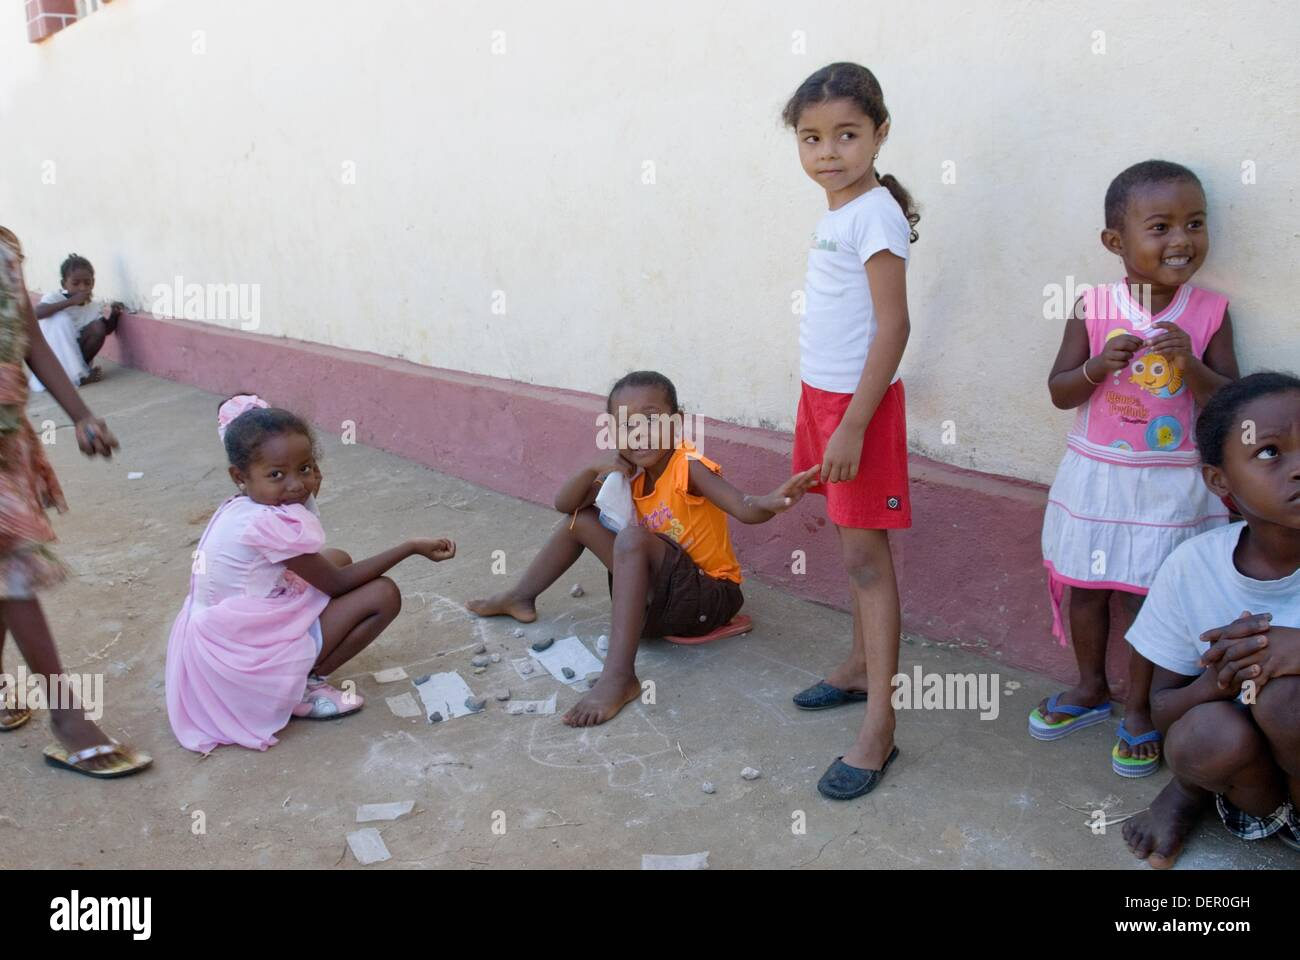 little girls playing in the street, Hell-Ville Andoany, Nosy Be island, Republic of Madagascar, Indian Ocean - Stock Image